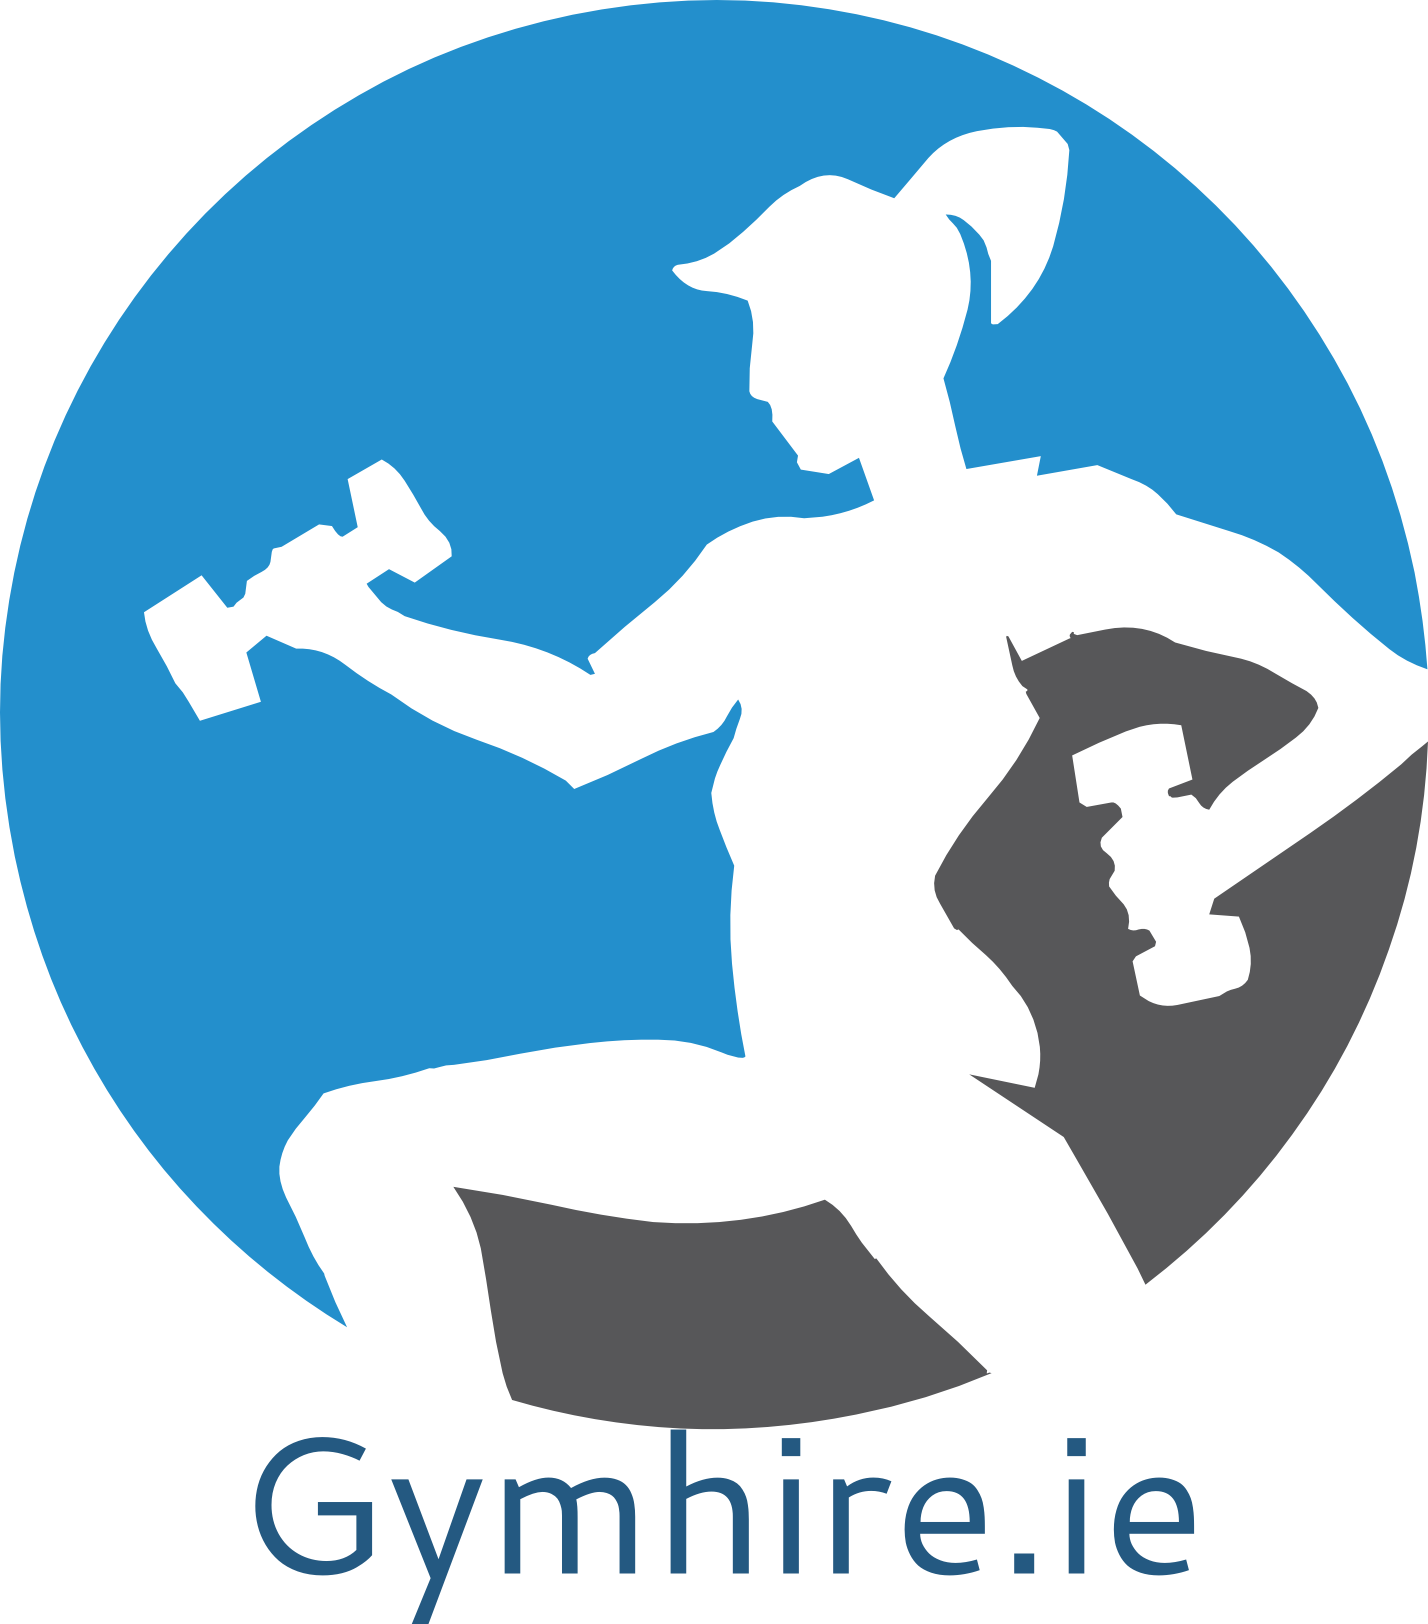 gymhire.ie